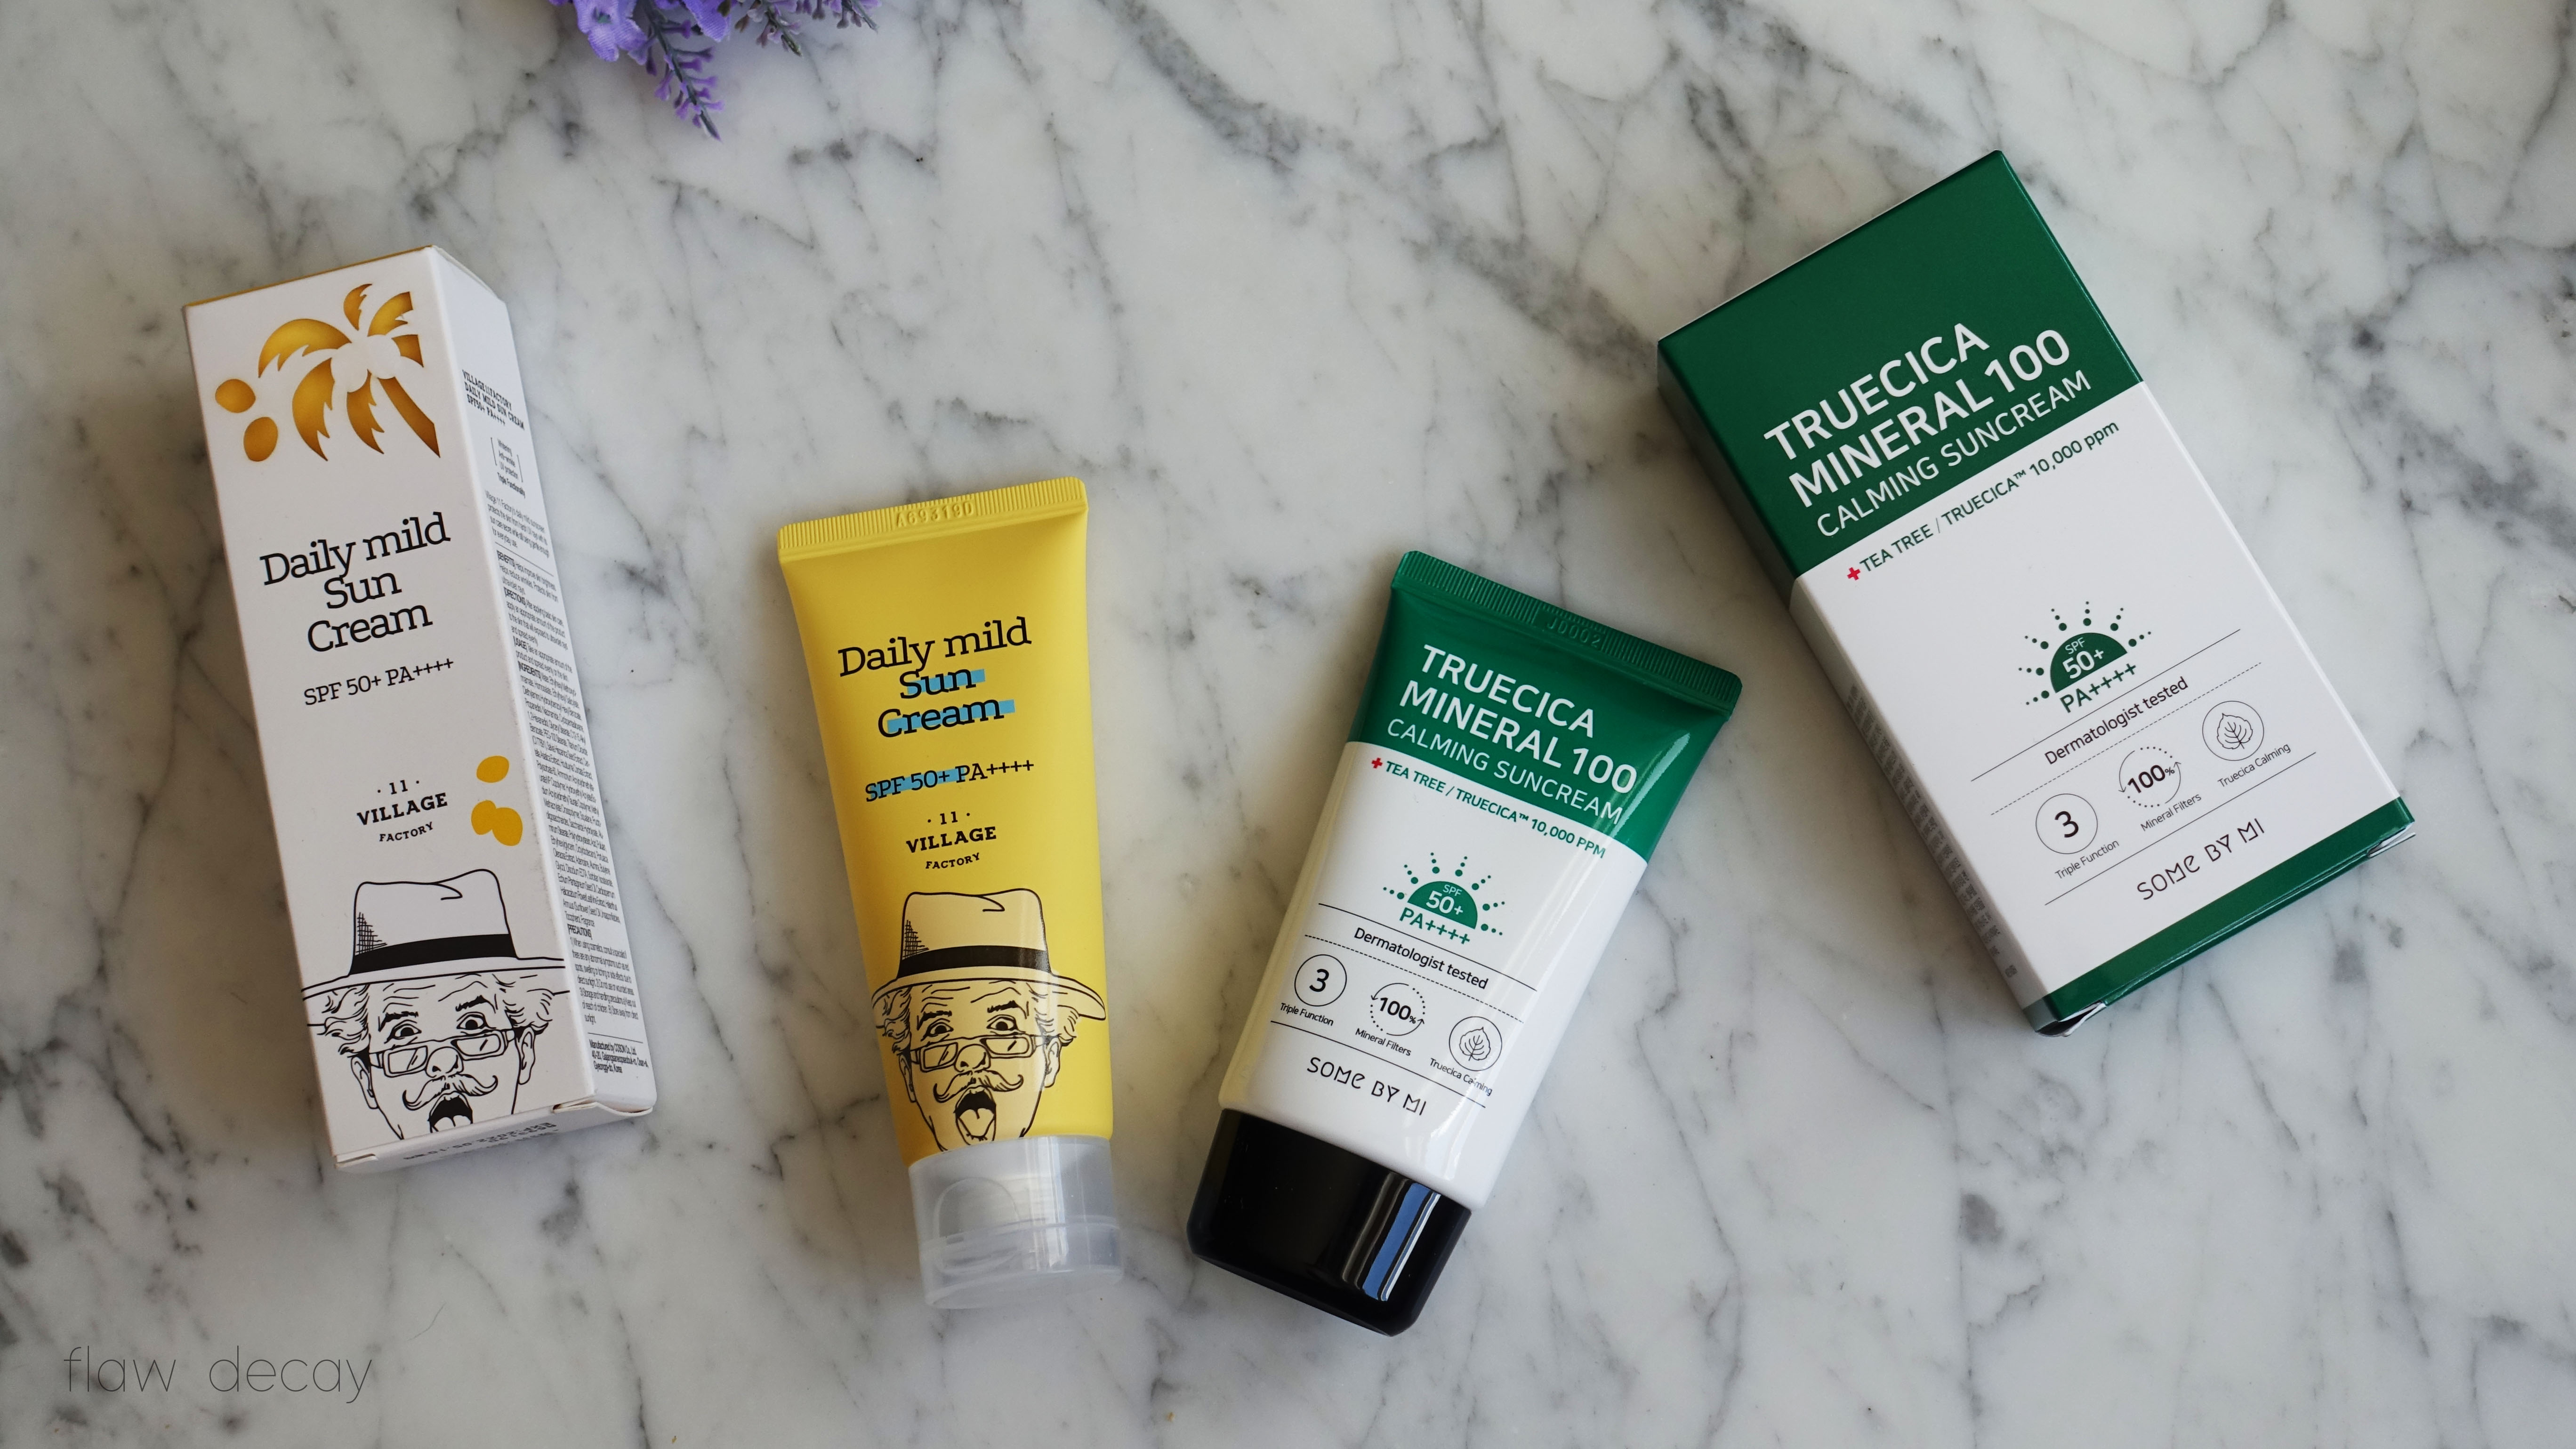 11 Village Factory Daily Mild Sun Cream and Truecica Mineral Calming Suncream Some By Mi - Yes Style First Haul and Impressions